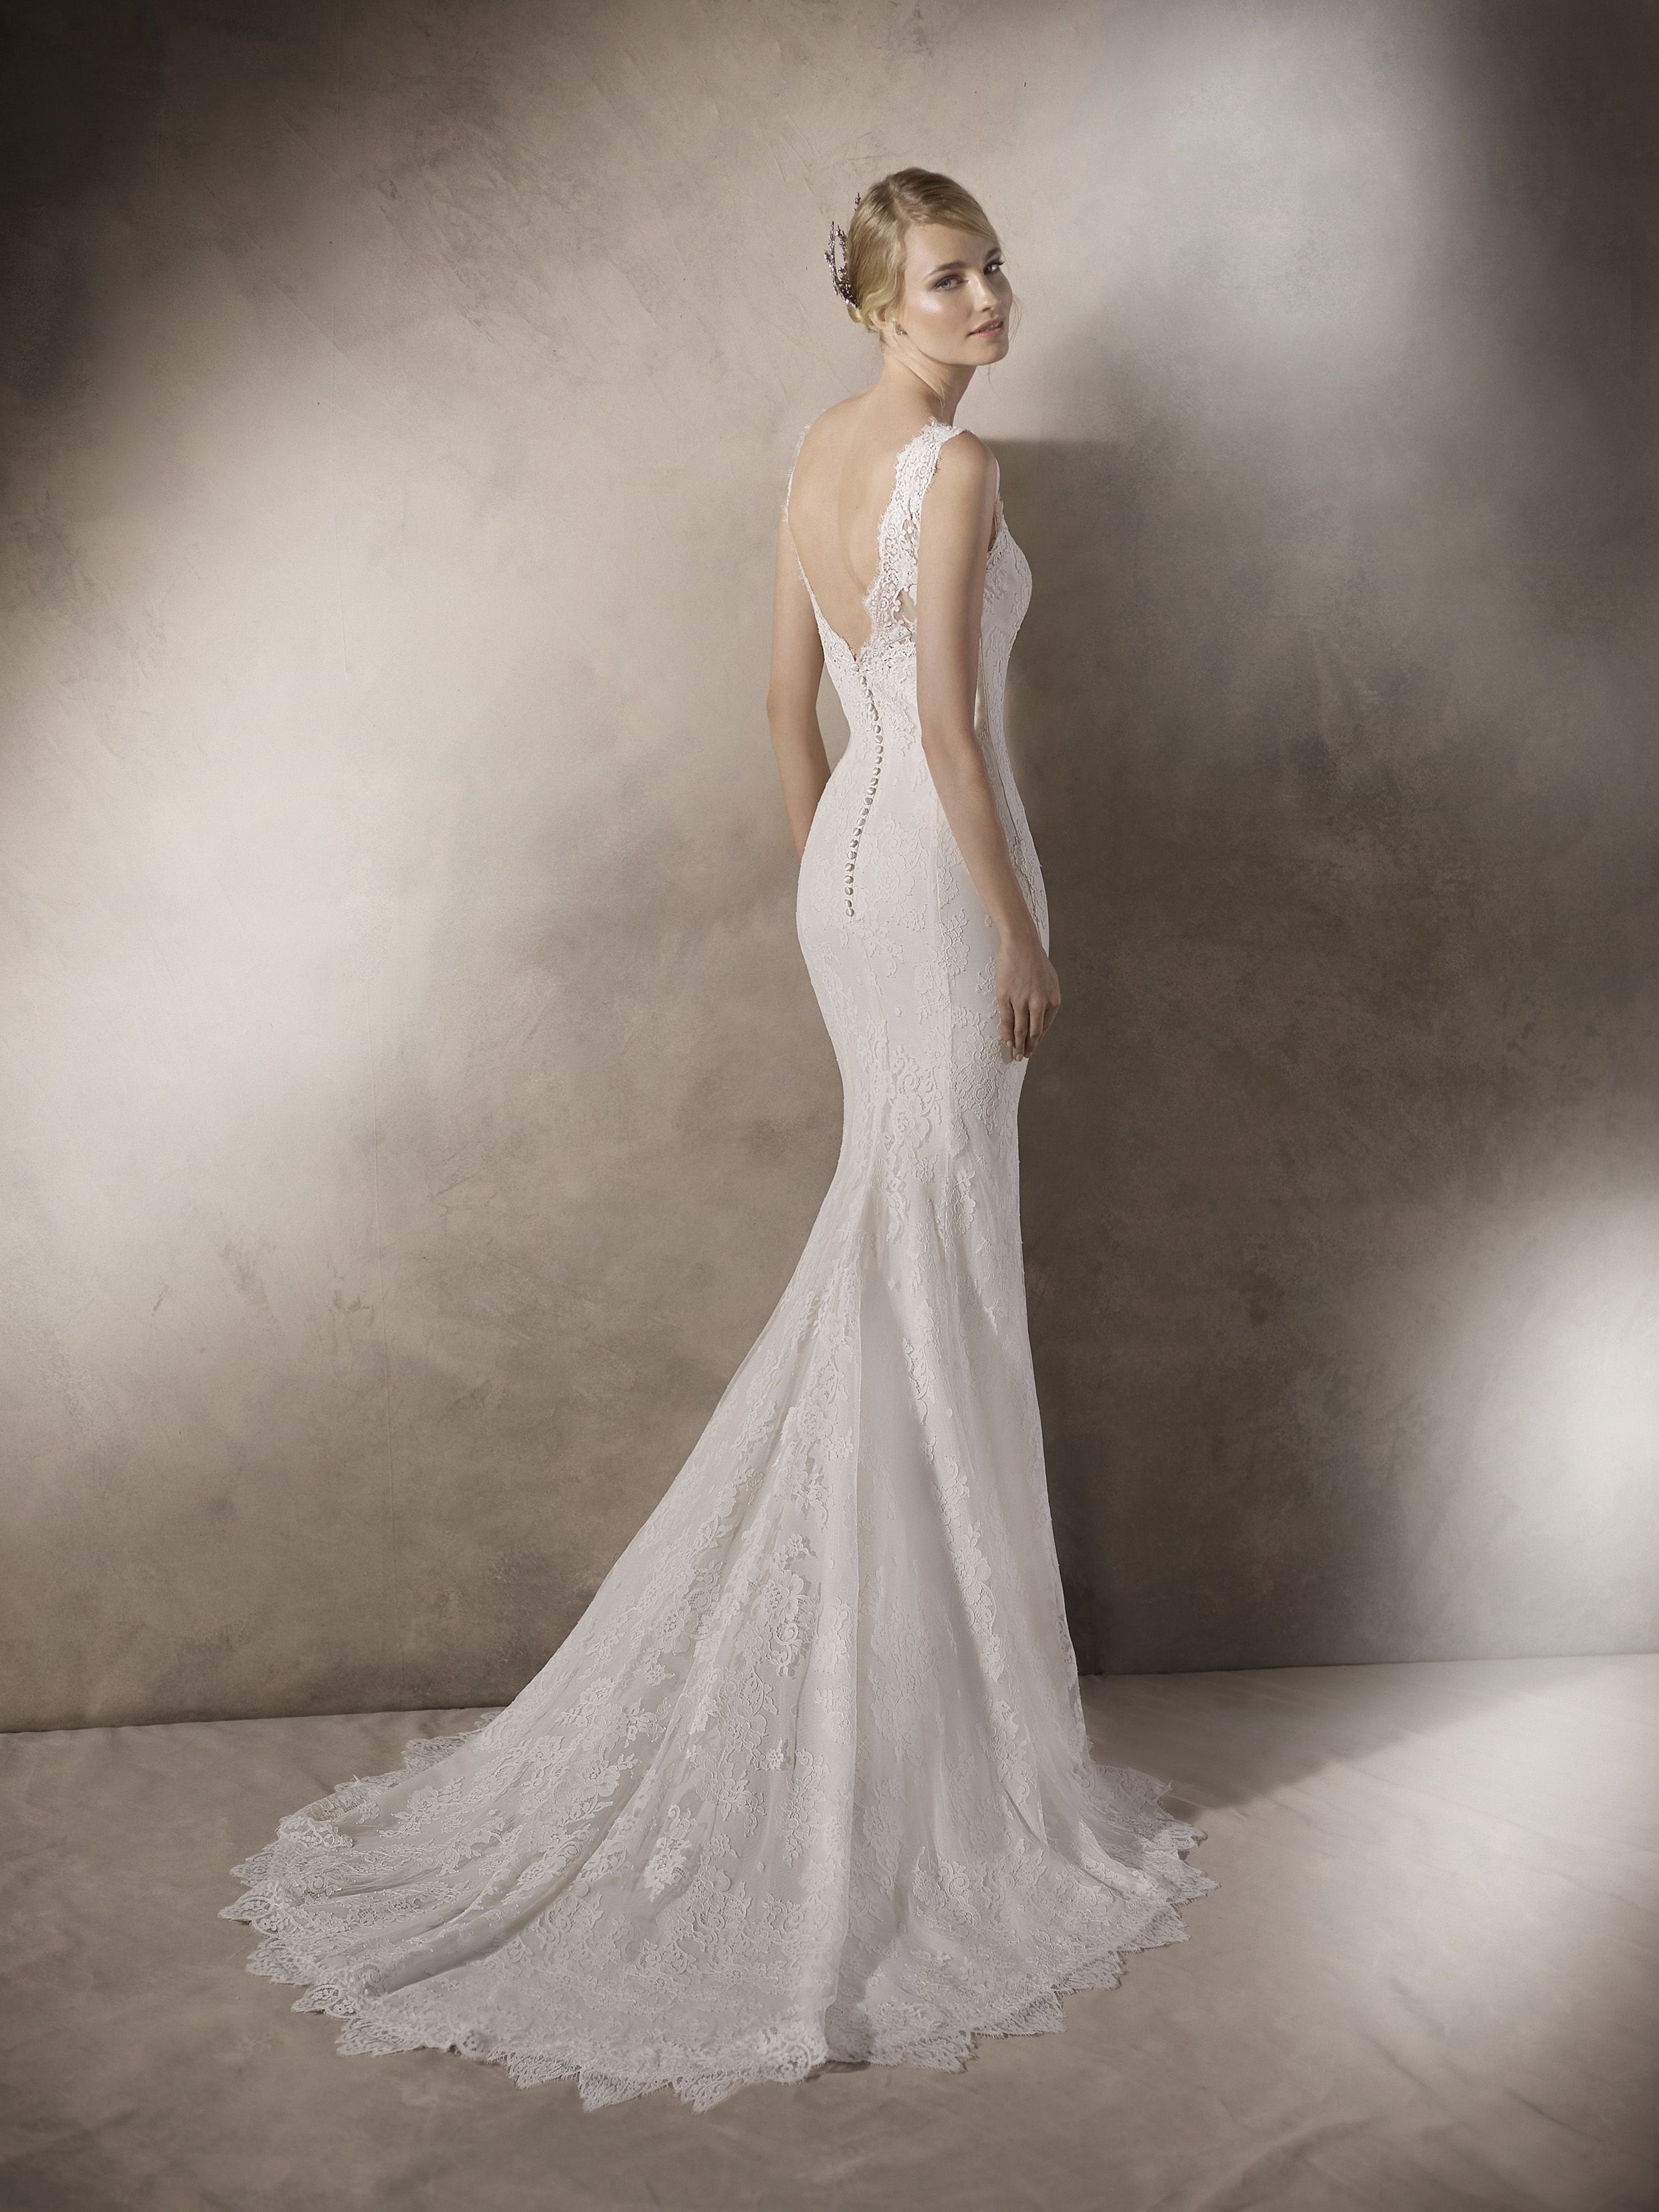 246f28b64604 ... thistles.ie - Galway's best-loved bridal boutique. haim_chaim_d HAIM Spectacular  mermaid wedding dress in crepe. The V-neck is crafted in tulle, ...